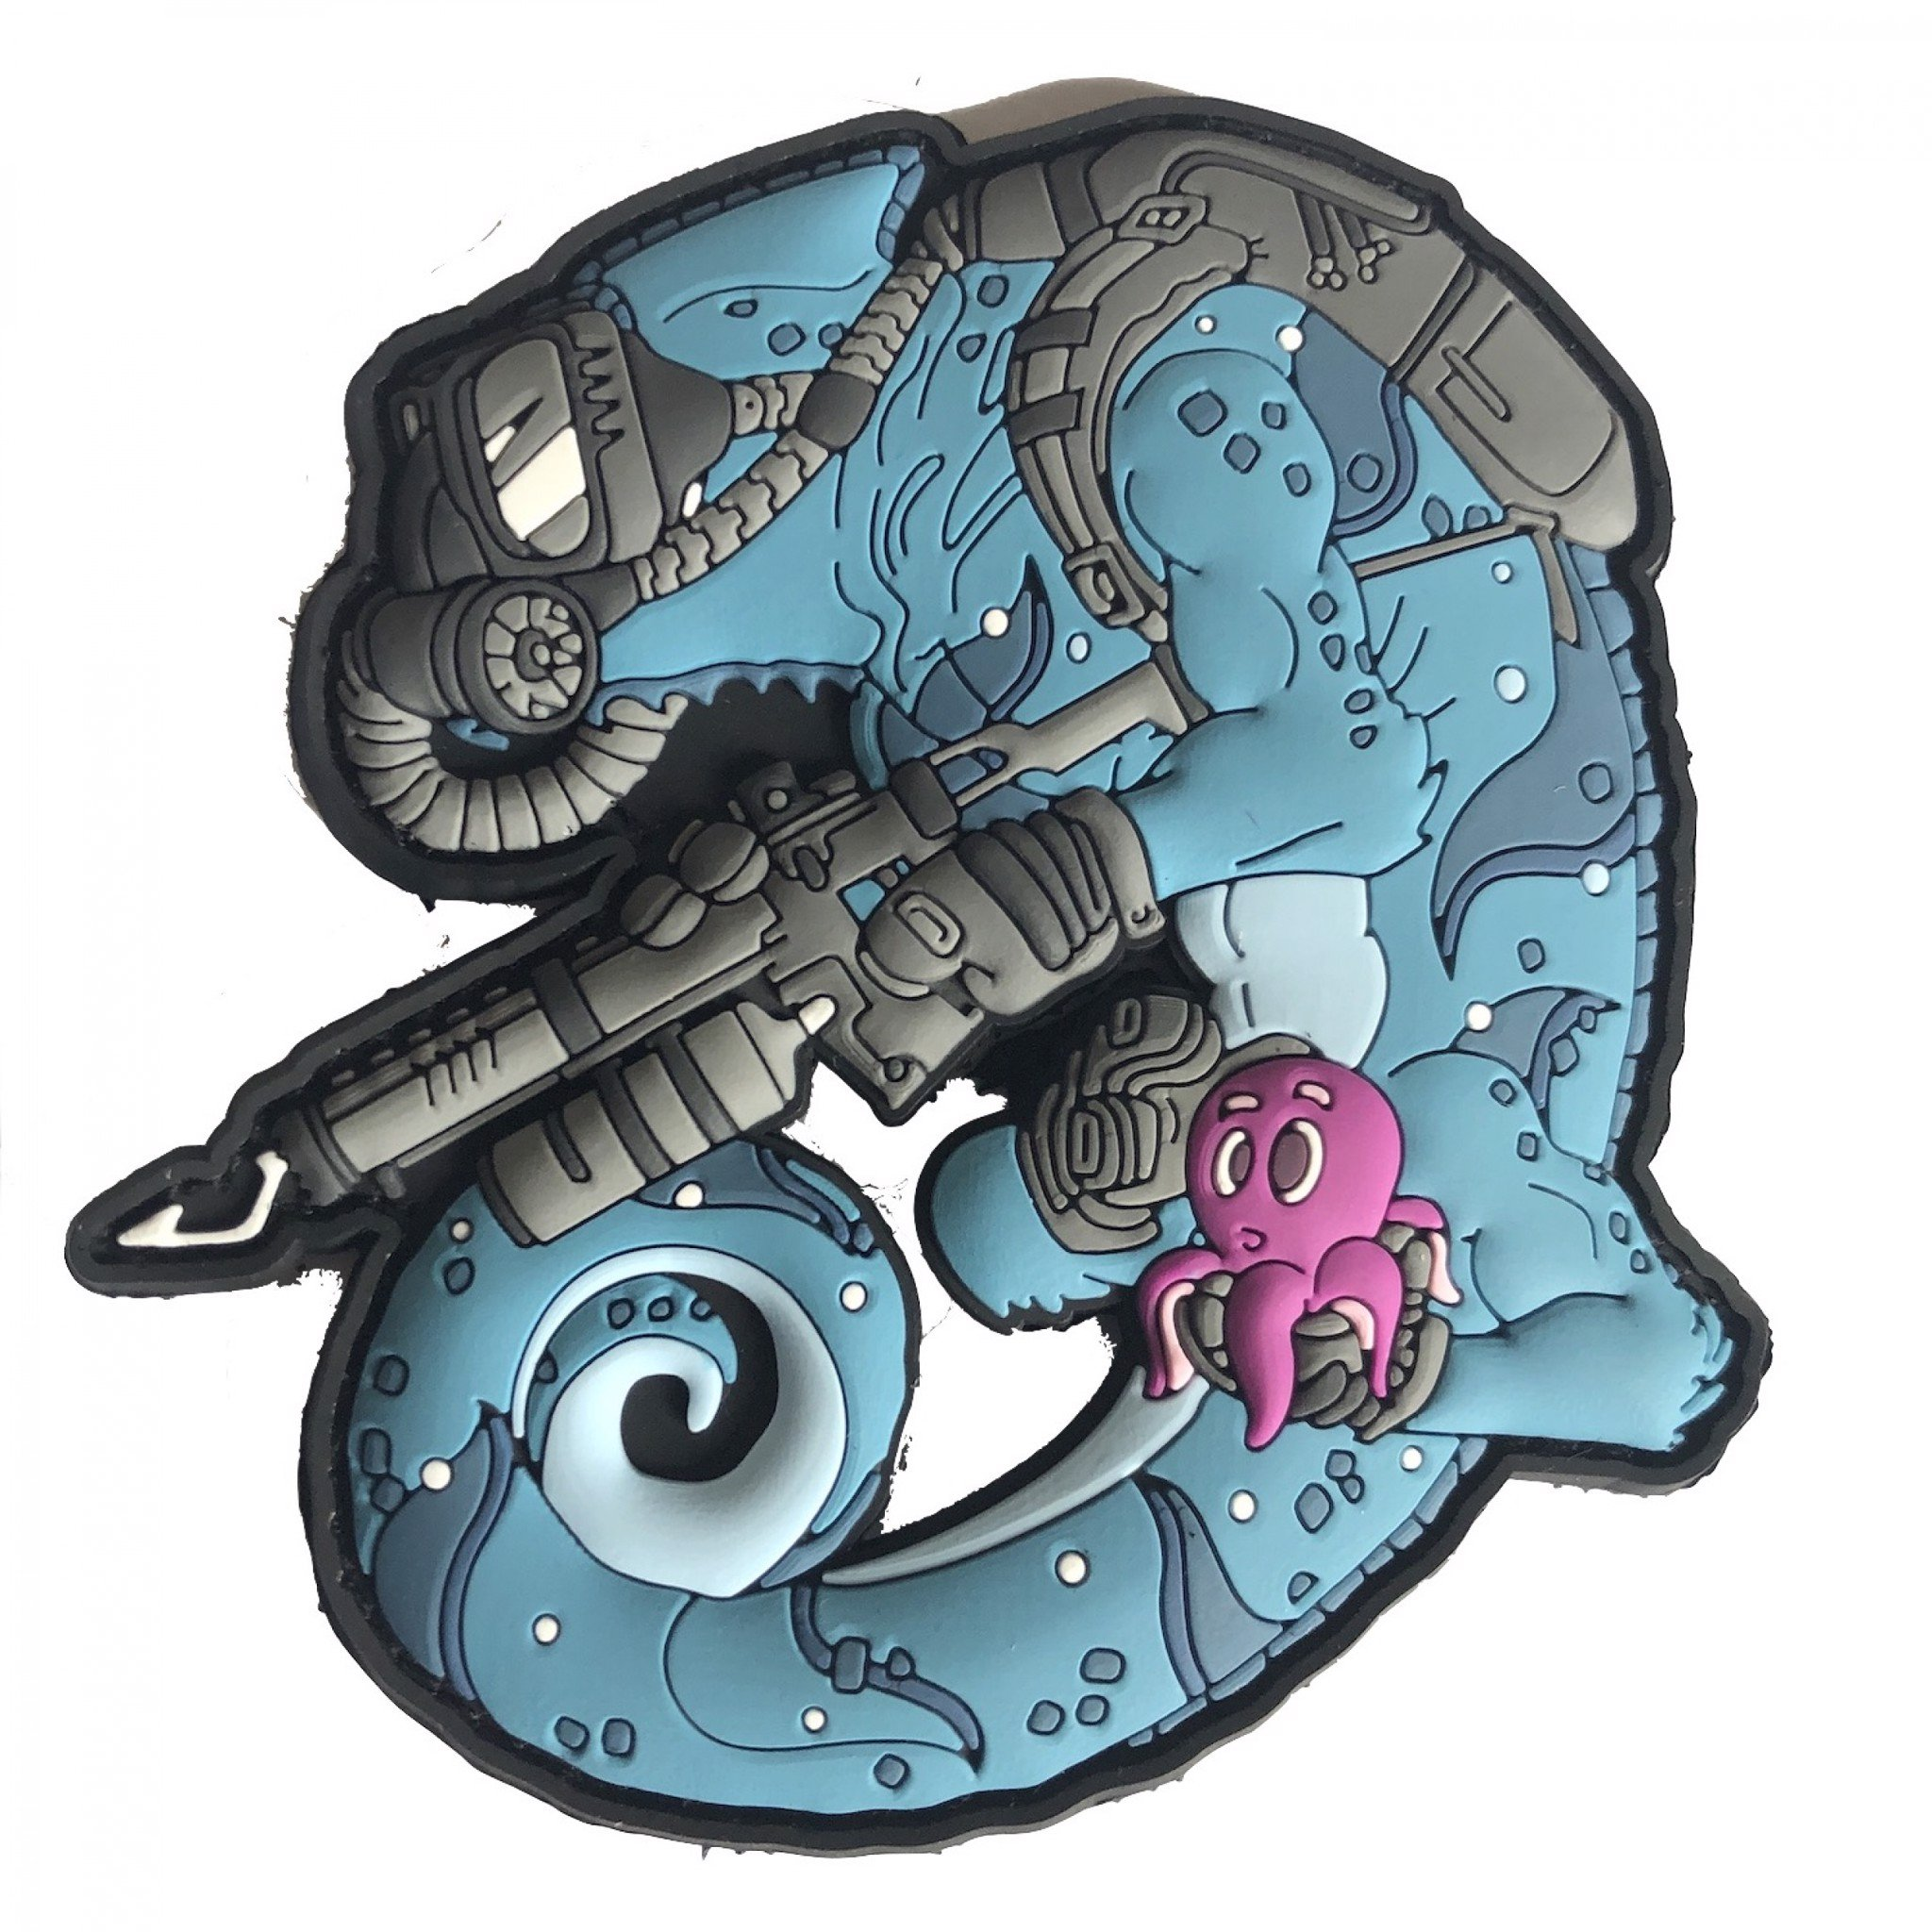 CHAMELEON LEGION DIVER TAUCHER OPERATOR PATCH